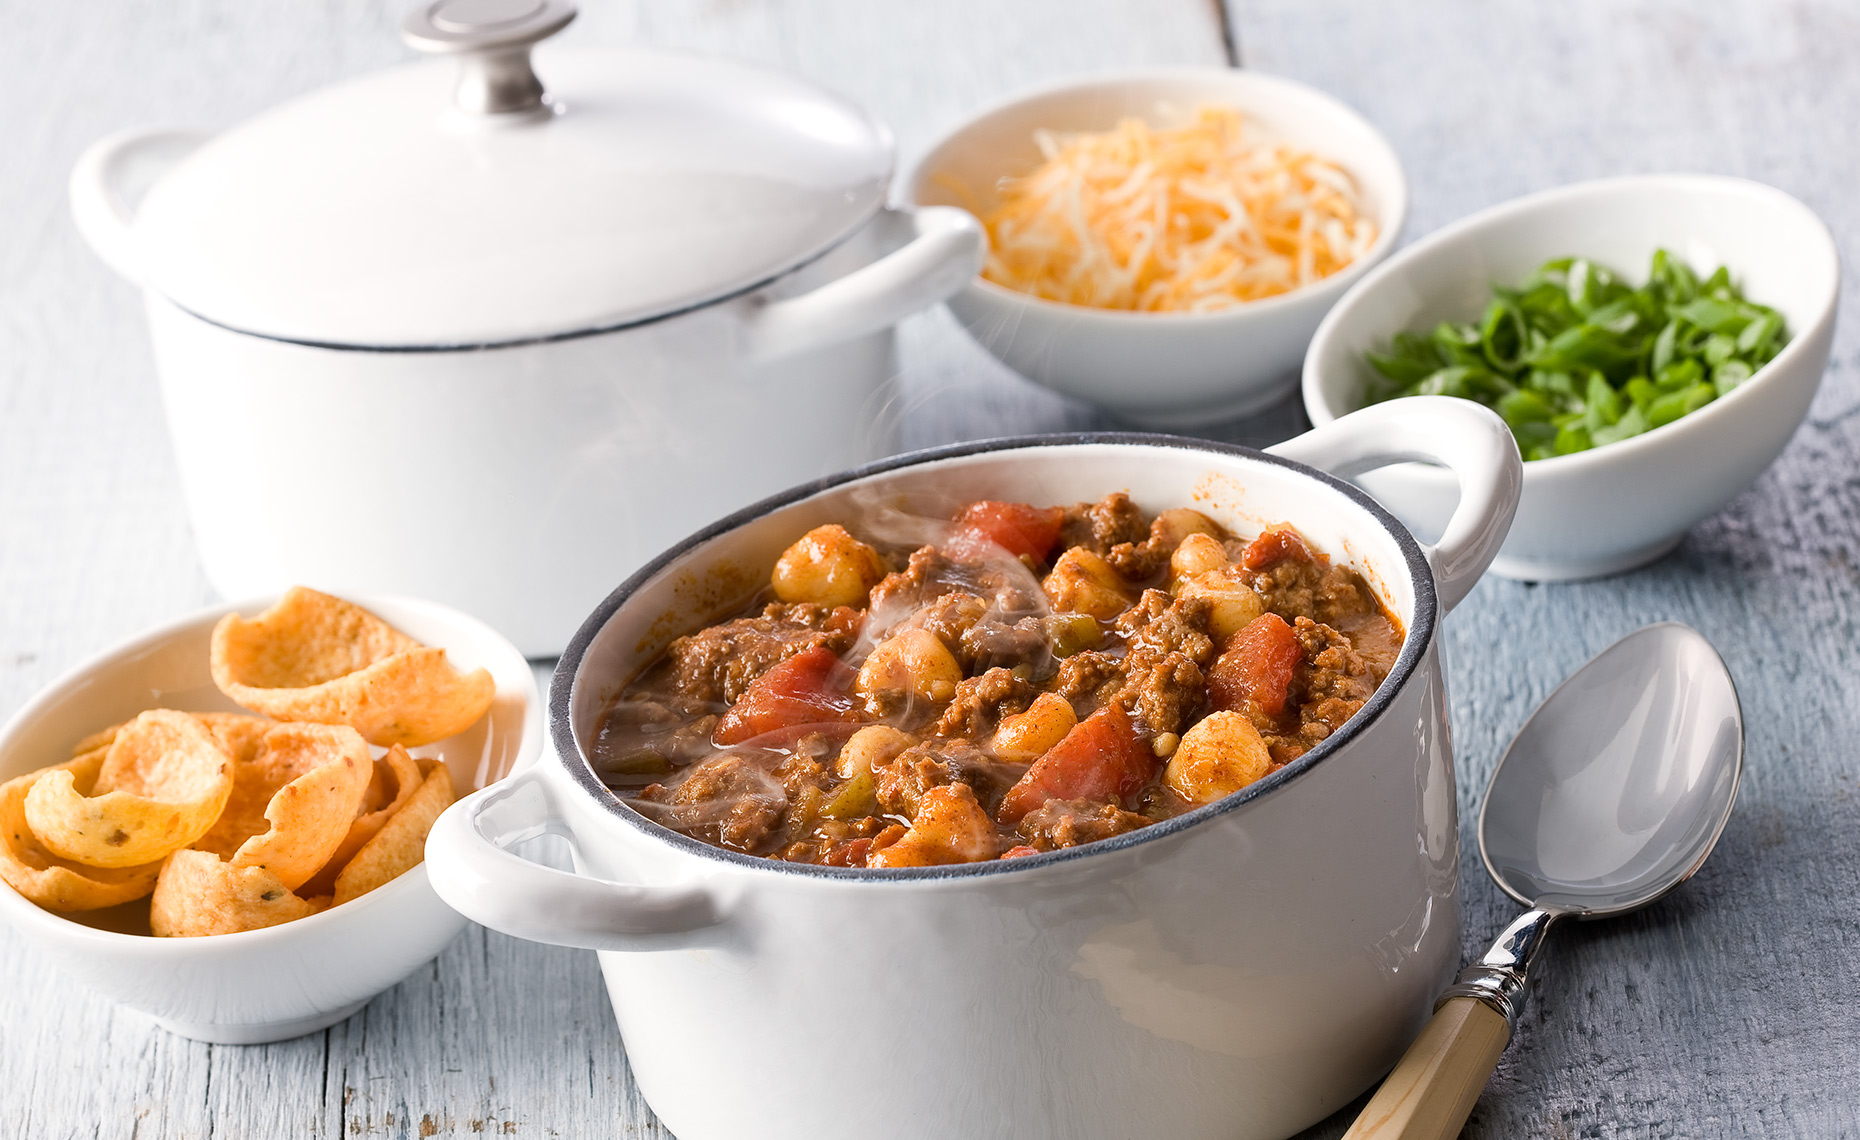 Food Photographer, Bread Photography, Pastry Photography, Dessert Photography | Pohuski Studios,  Spicy Beef Chili